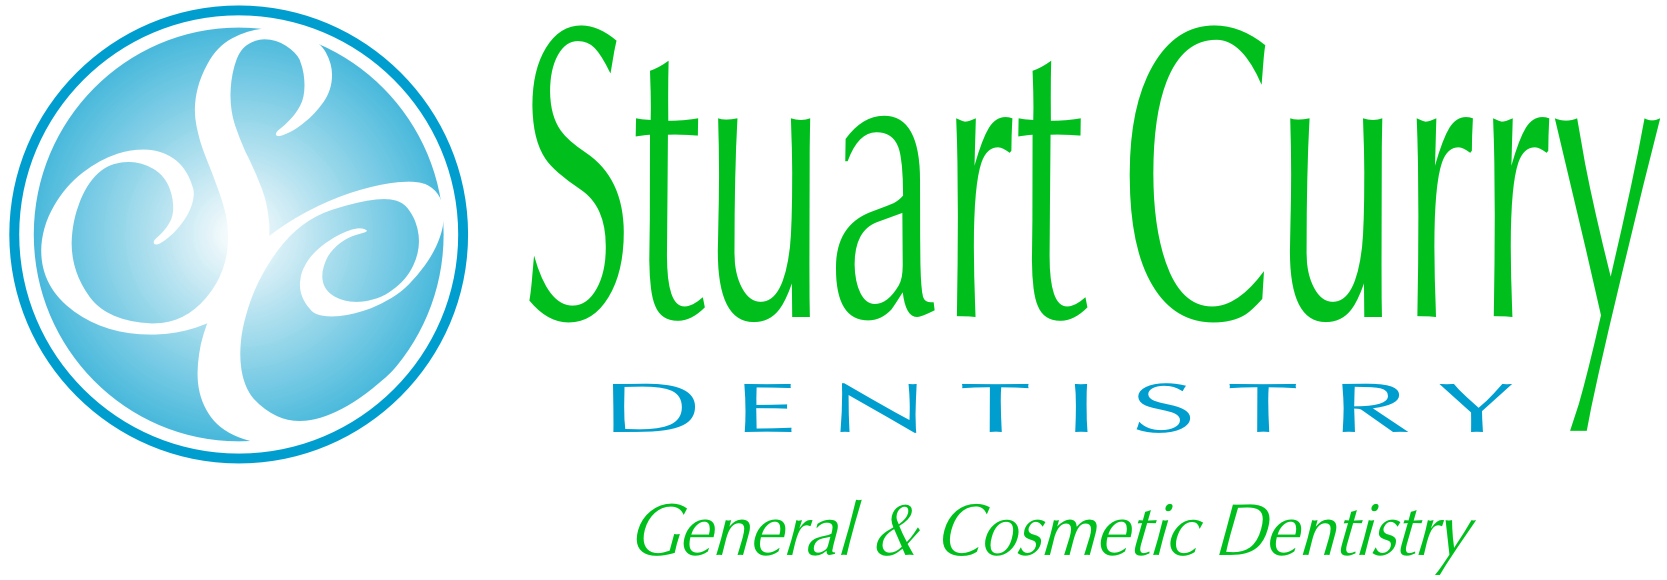 Stuart Curry Dentistry Birmingham AL Celebrates 300th Invisalign Patient.